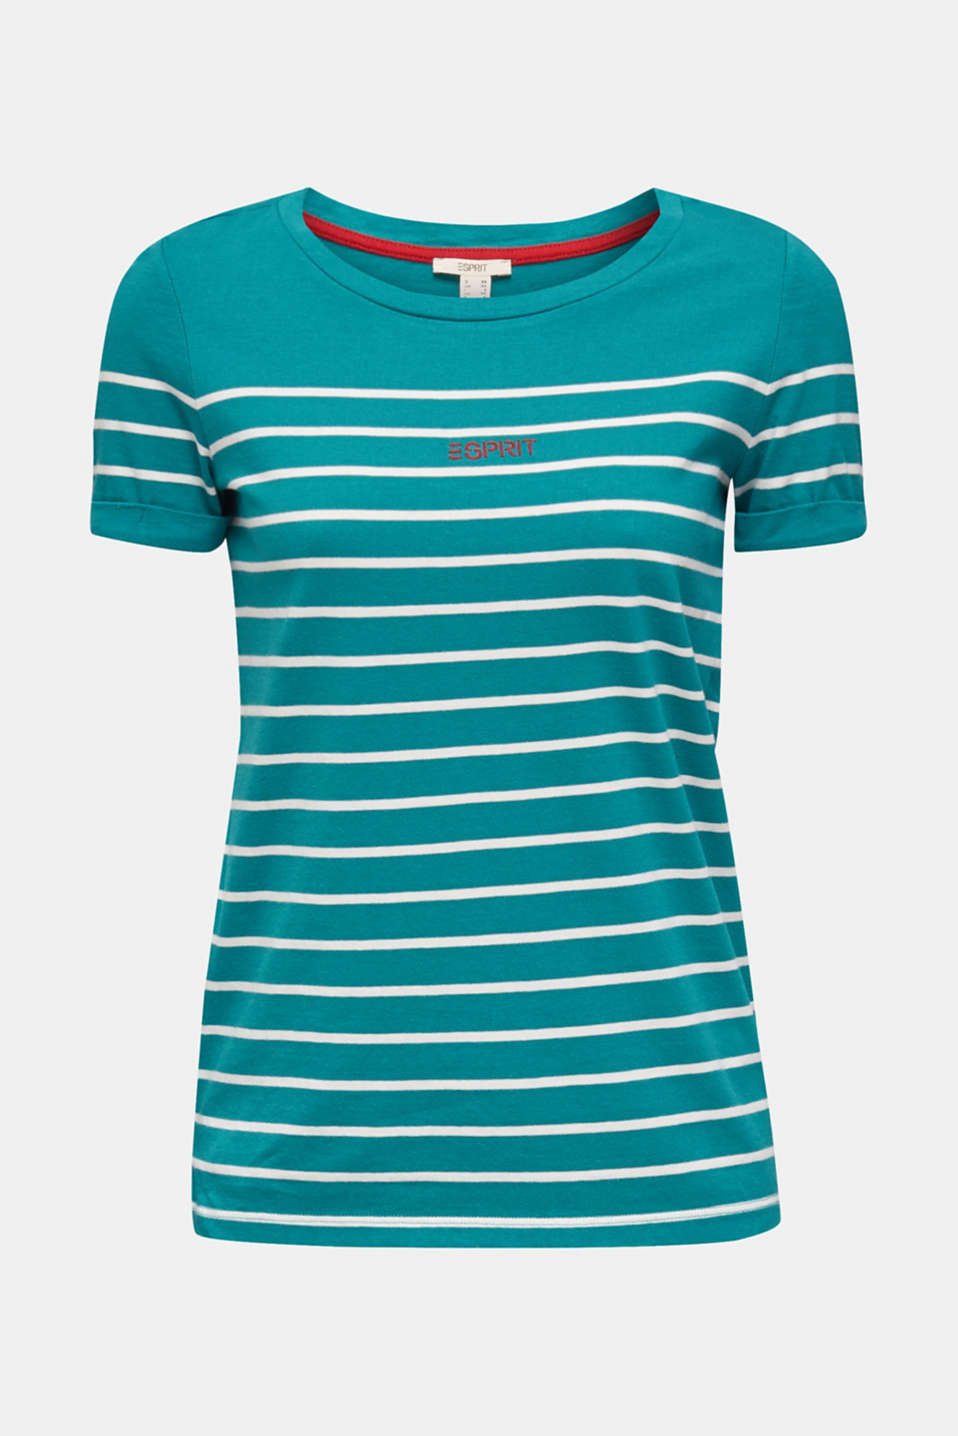 Striped top with embroidery, 100% cotton, TEAL GREEN, detail image number 5